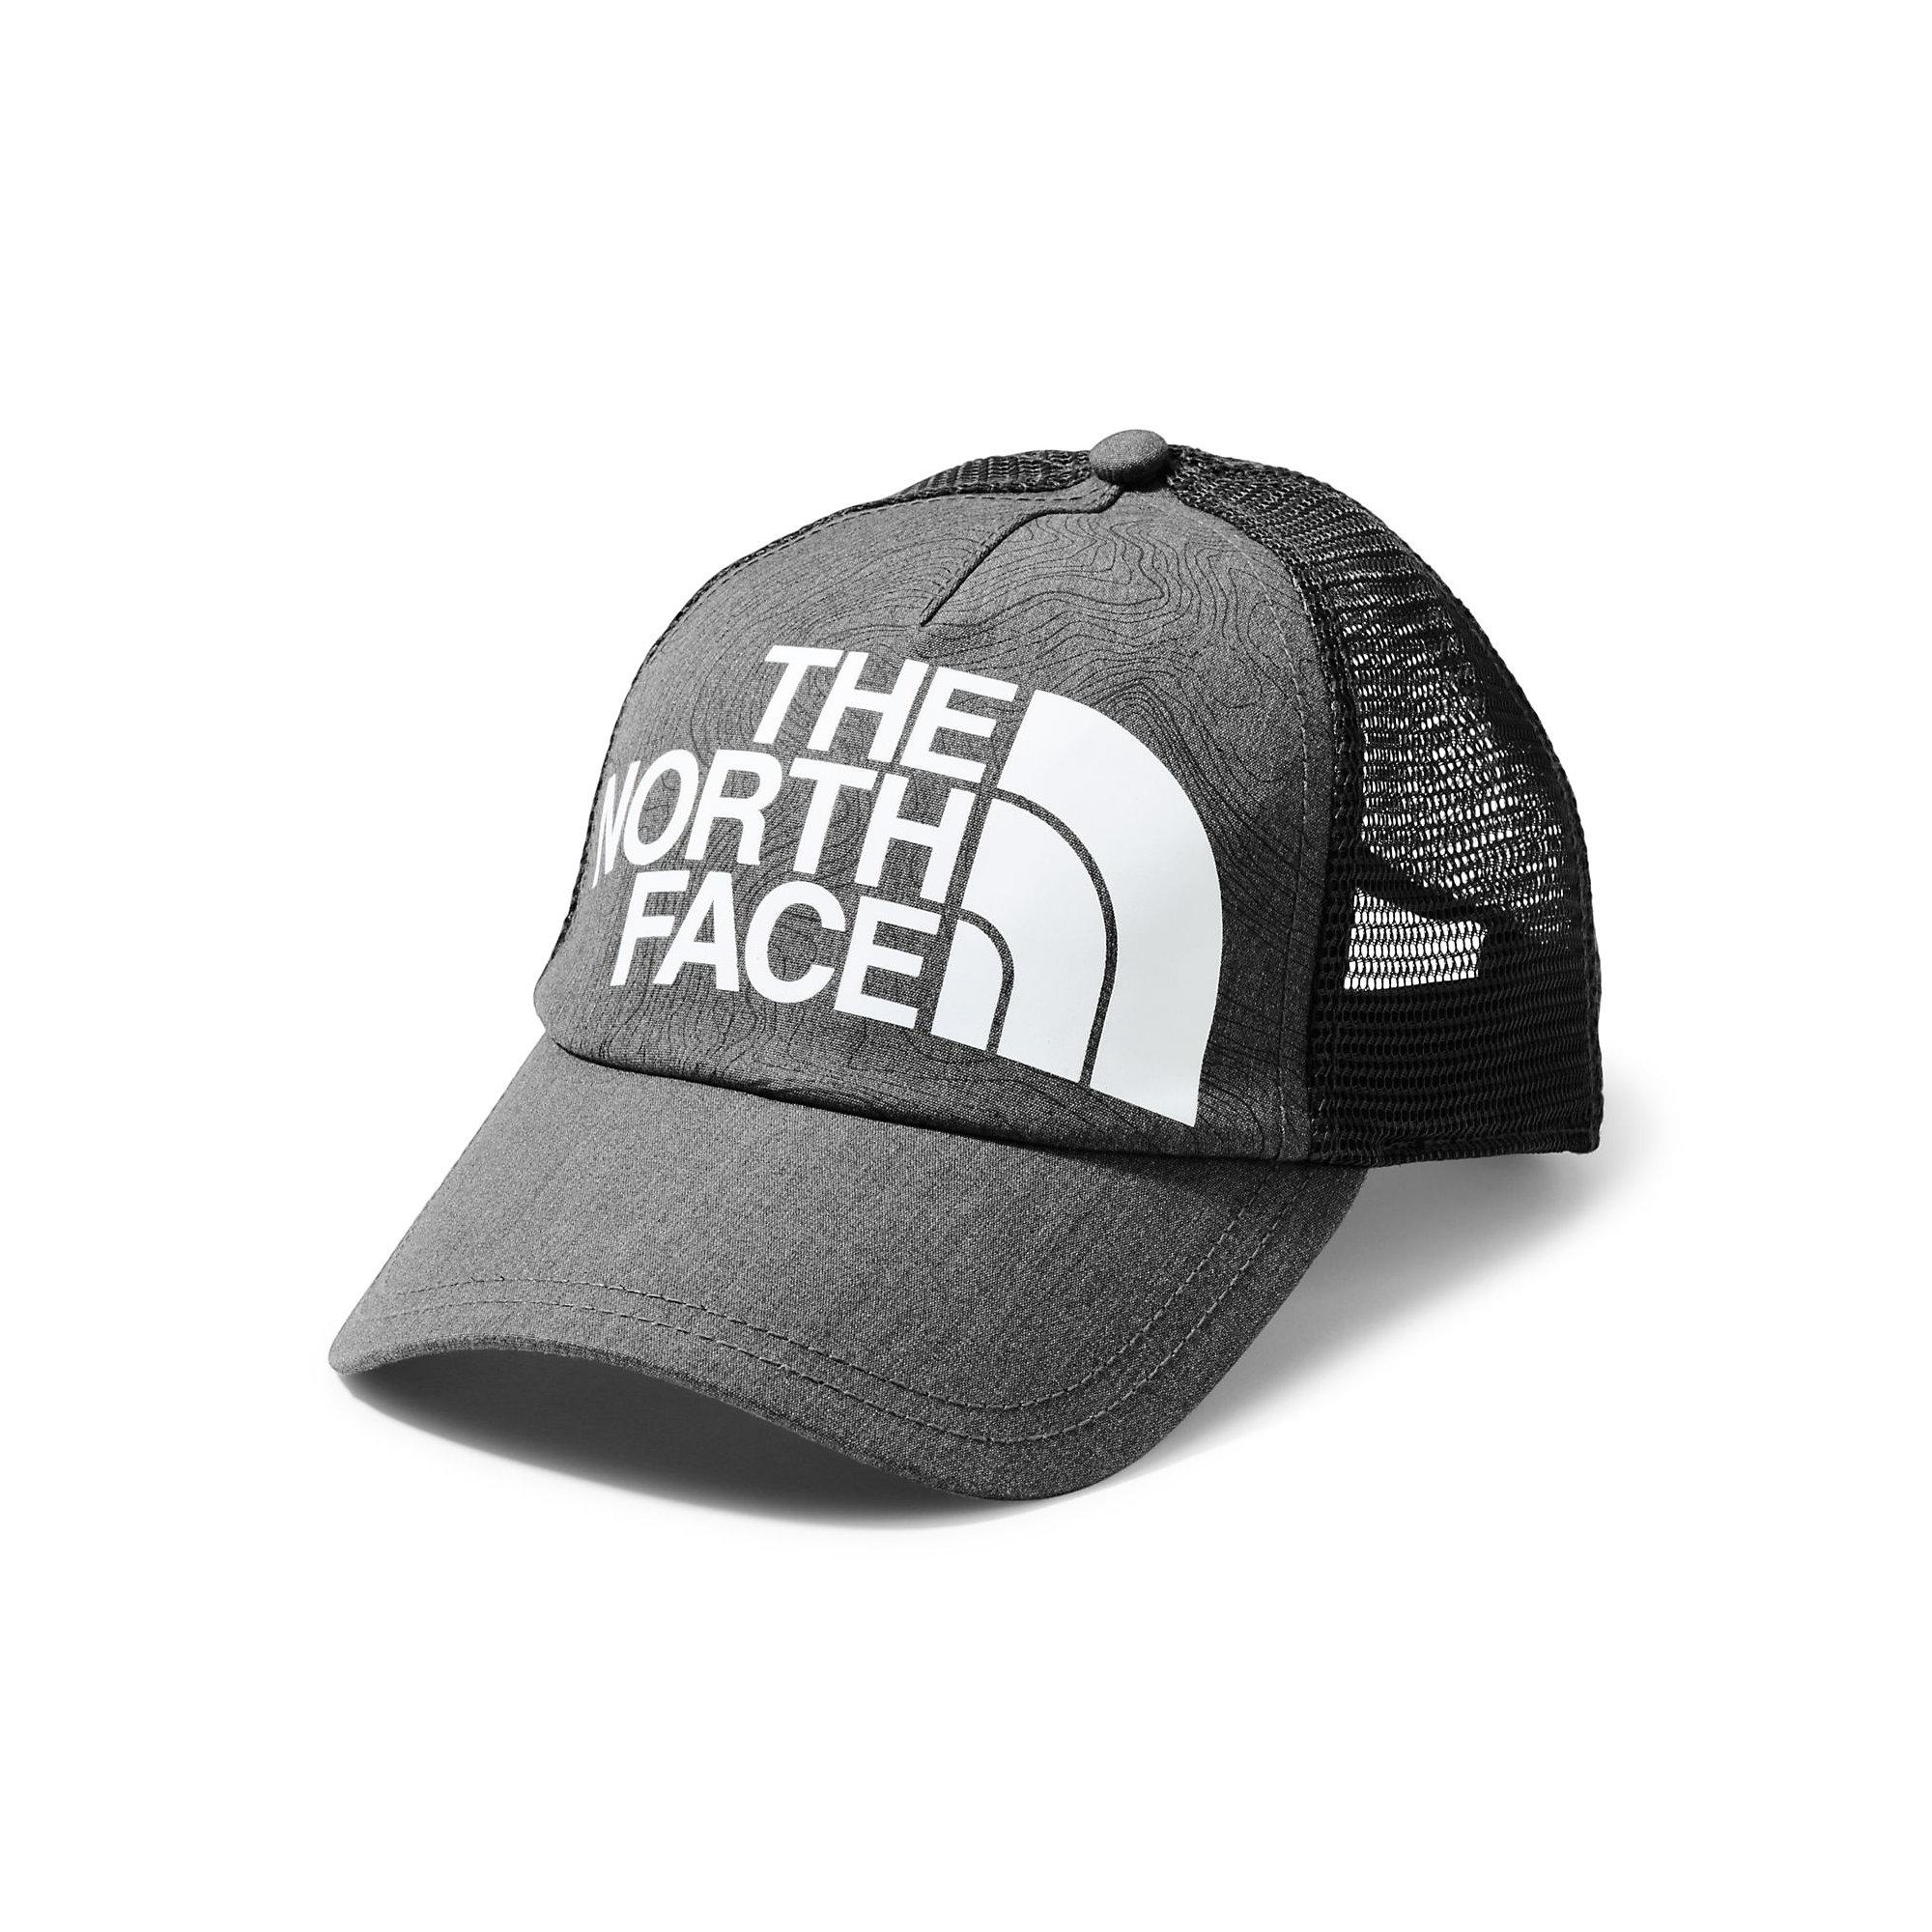 056a49f5 The North Face Low Pro Trucker Cap in Gray - Lyst